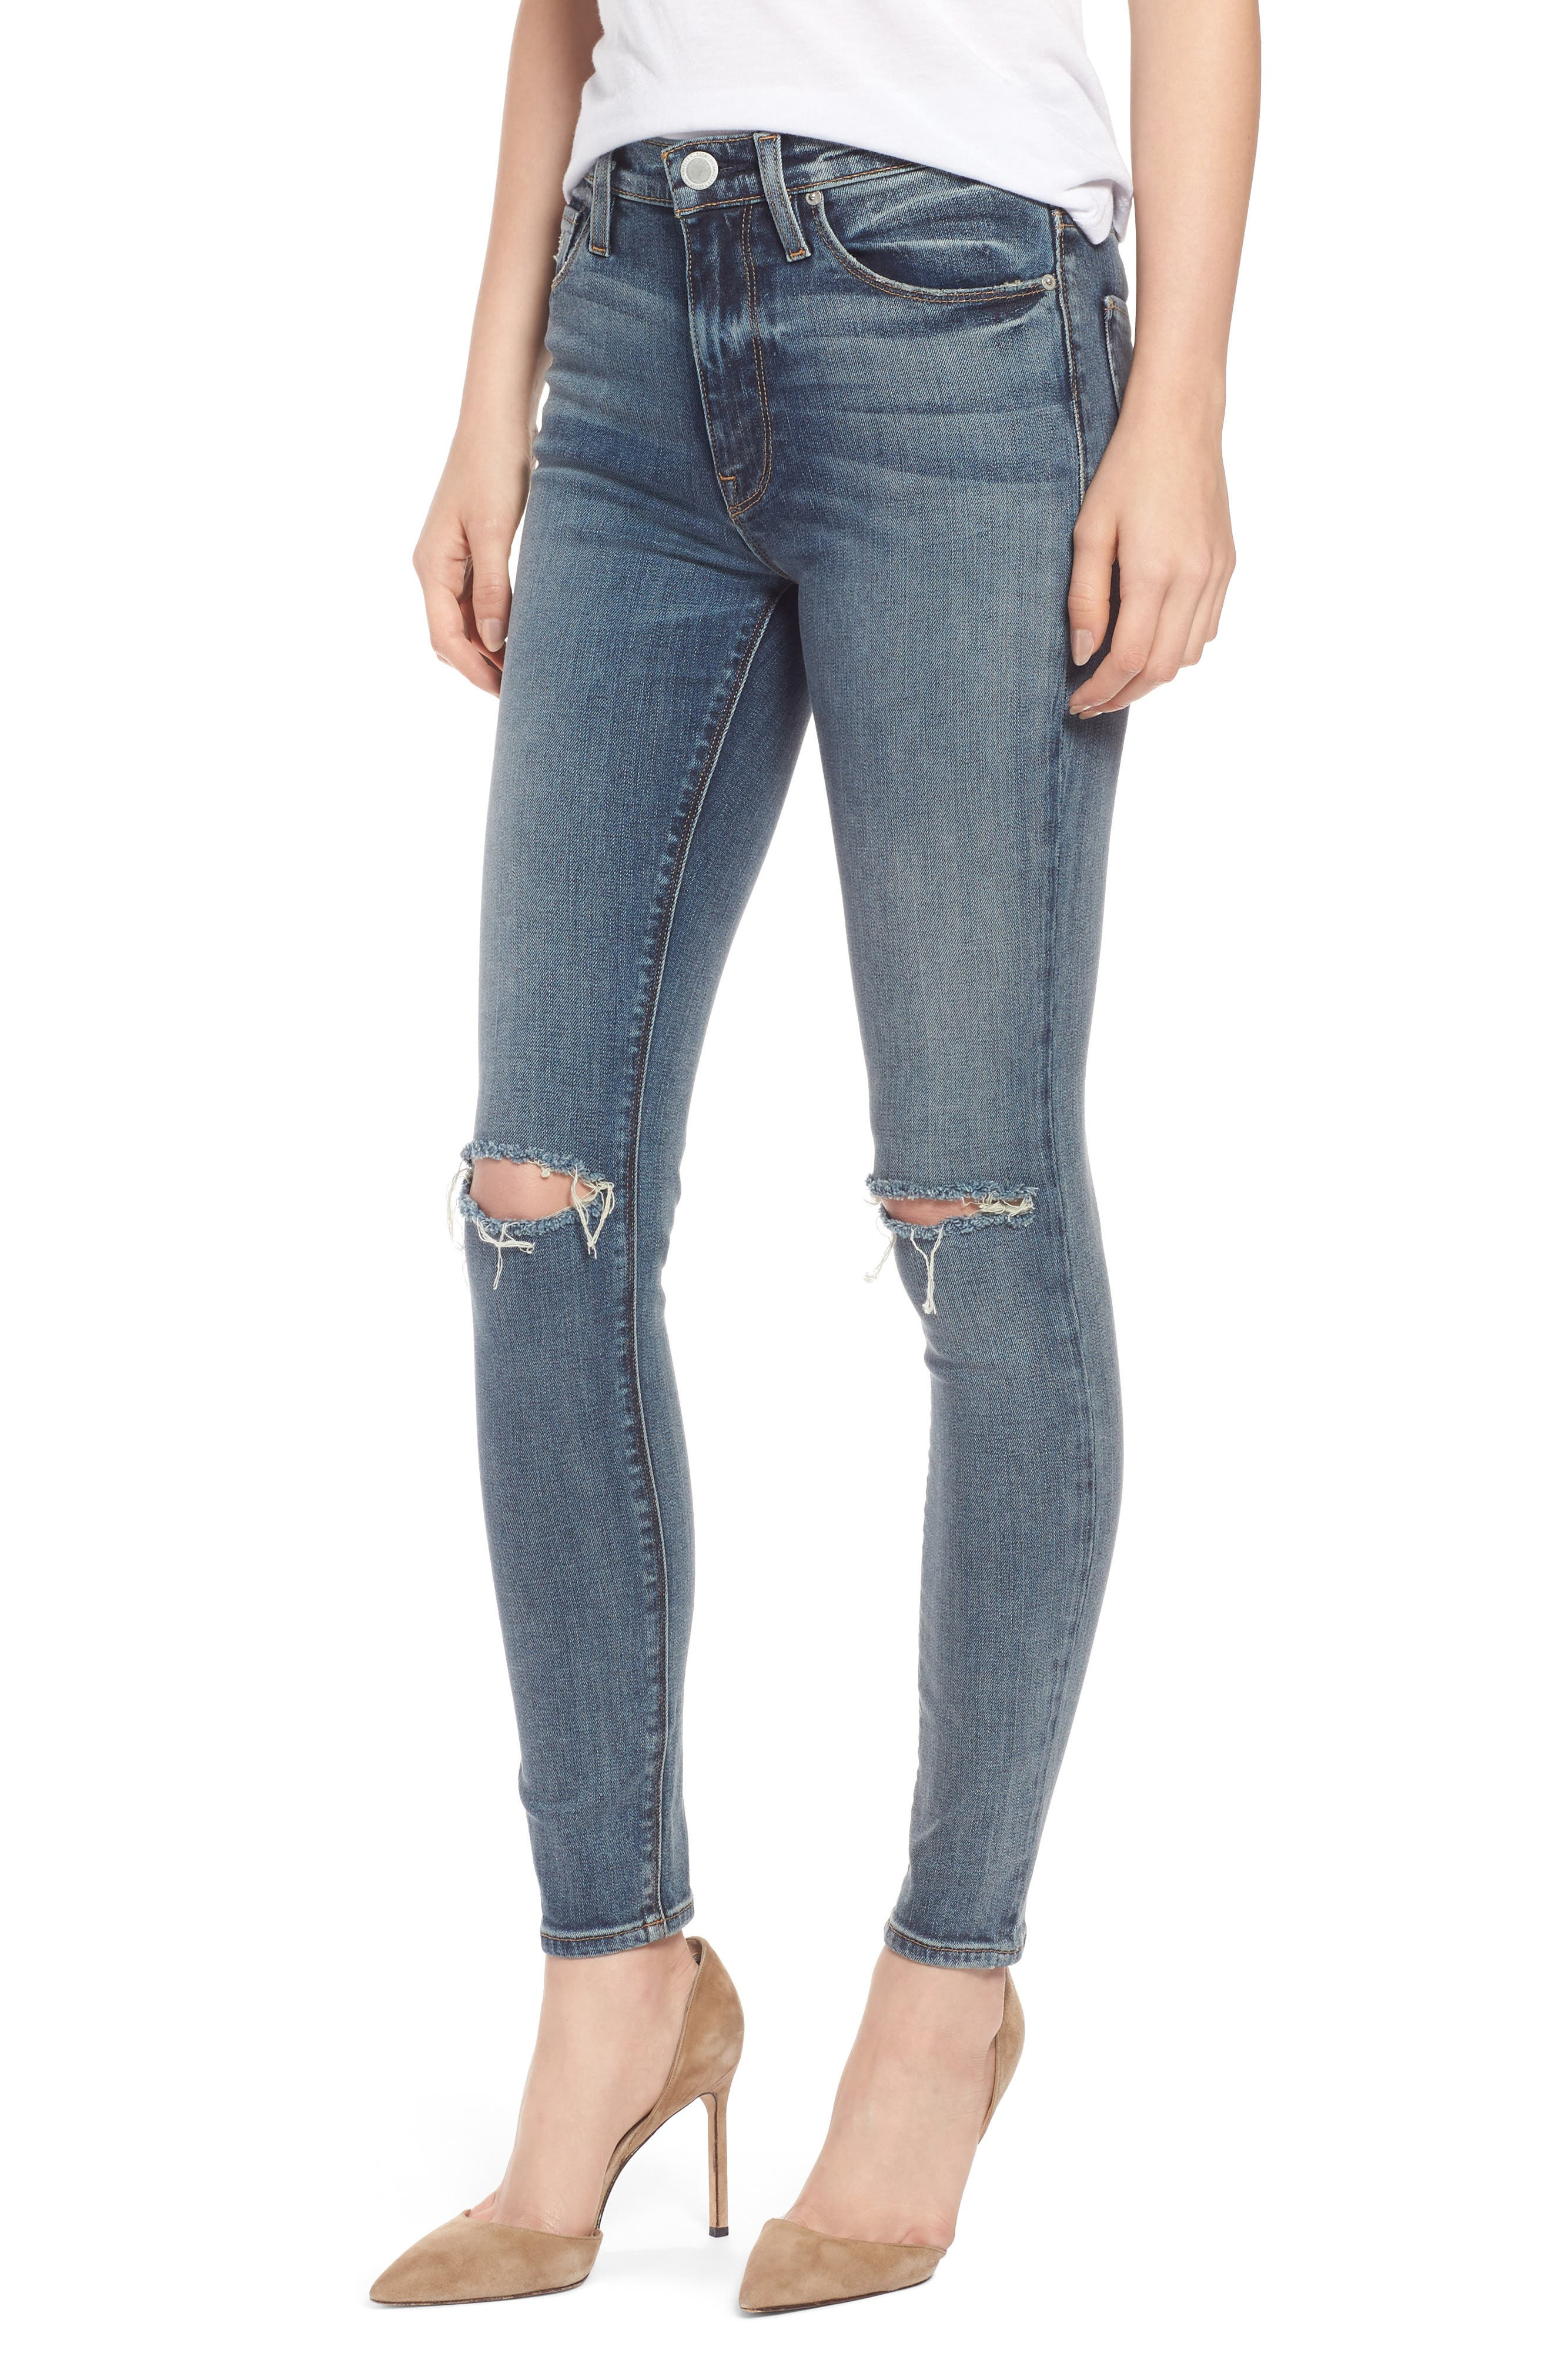 Barbara High Waist Super Skinny Jeans,                         Main,                         color, 420